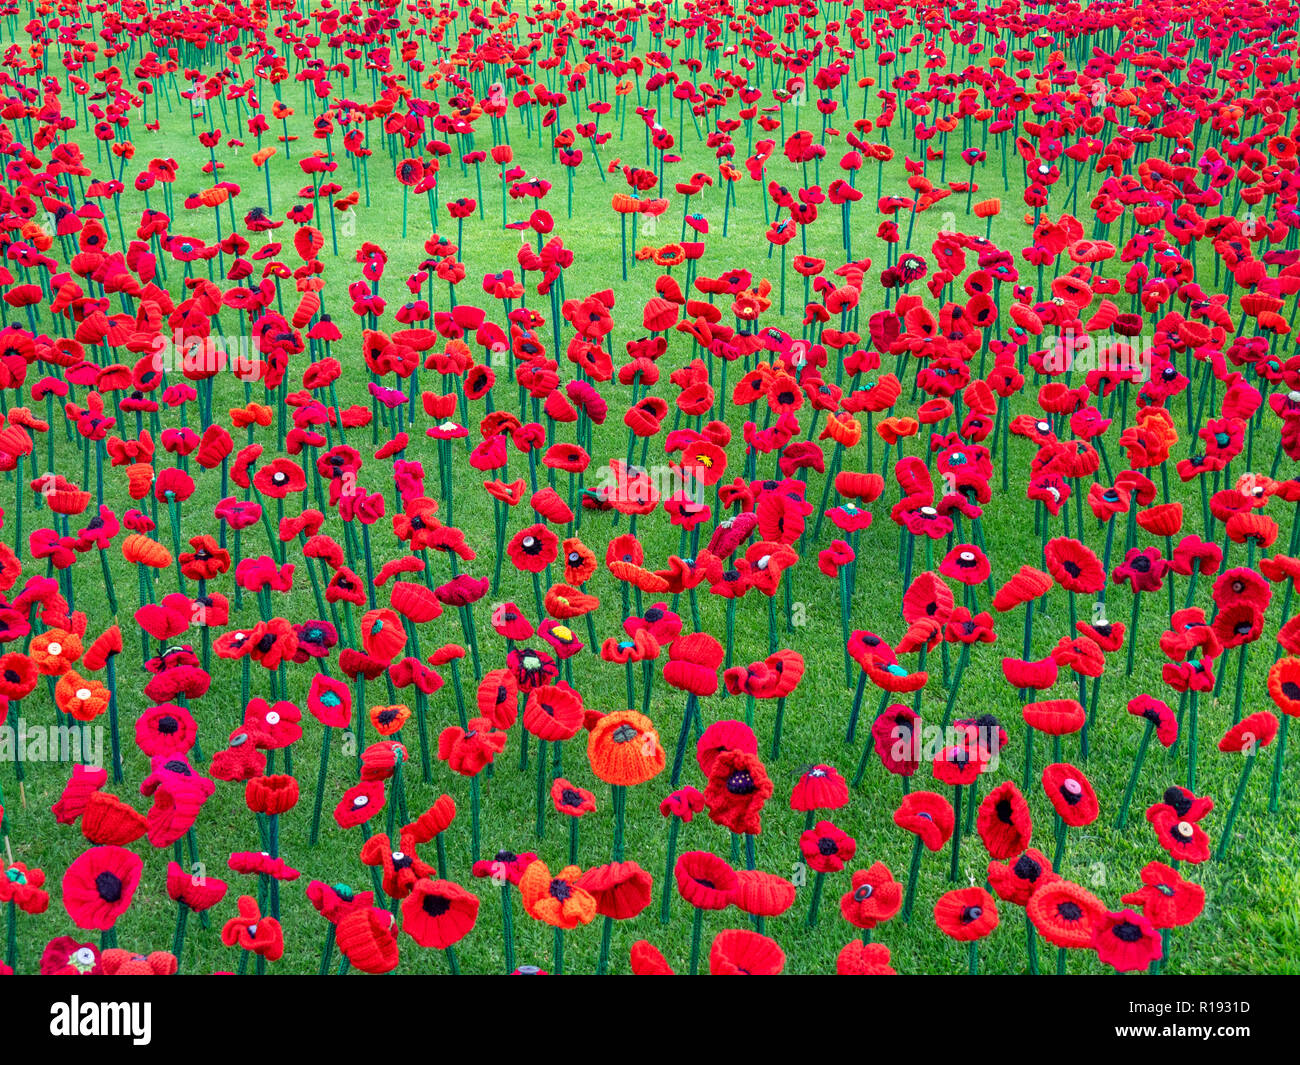 2018 Remembrance Day Poppy Project display of handcrafted poppies in Kings Park Perth Western Australia - Stock Image